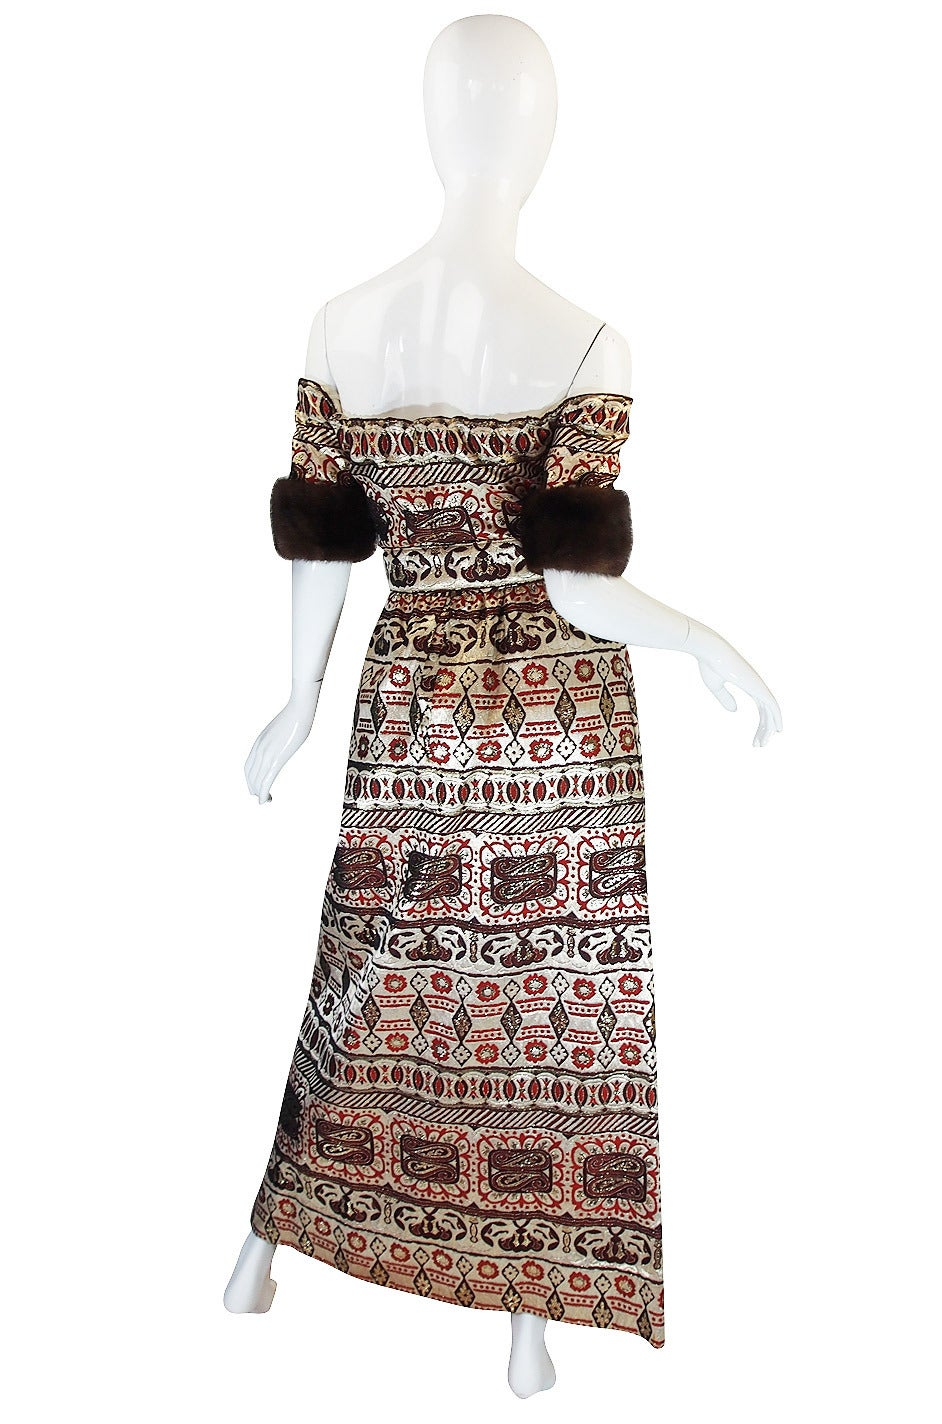 Amazing, rare and important silk metallic brocade gown by Oscar de la Renta is perfection. The fabric is shockingly light - at first glance you would think it is a heavy weight stiff brocade but it is actually quite light. It is of a good enough to